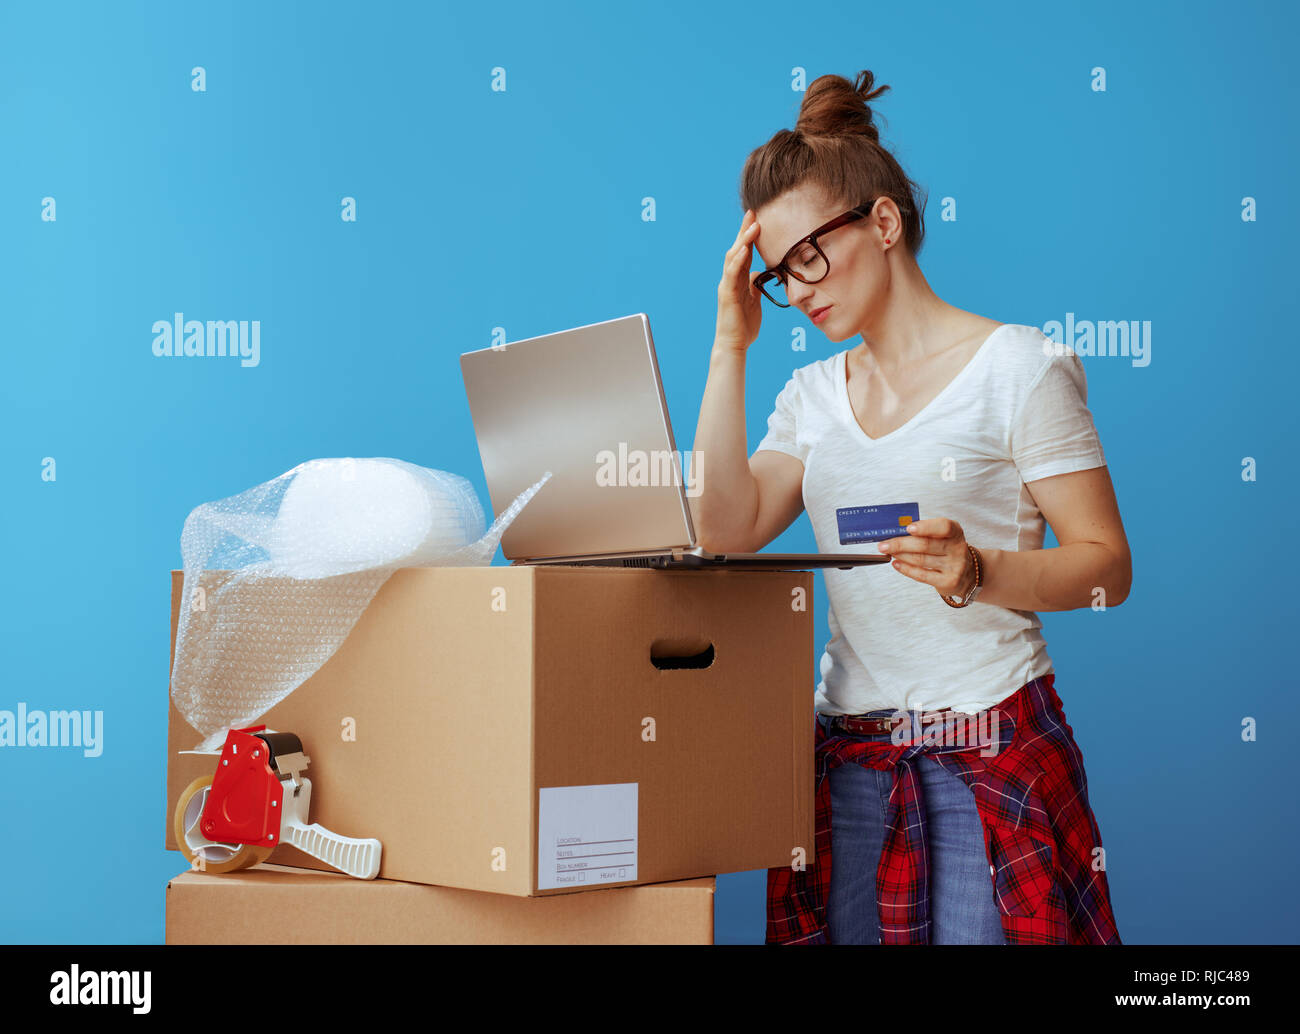 stressed modern woman in white t-shirt near cardboard box with laptop and credit card isolated on blue background - Stock Image